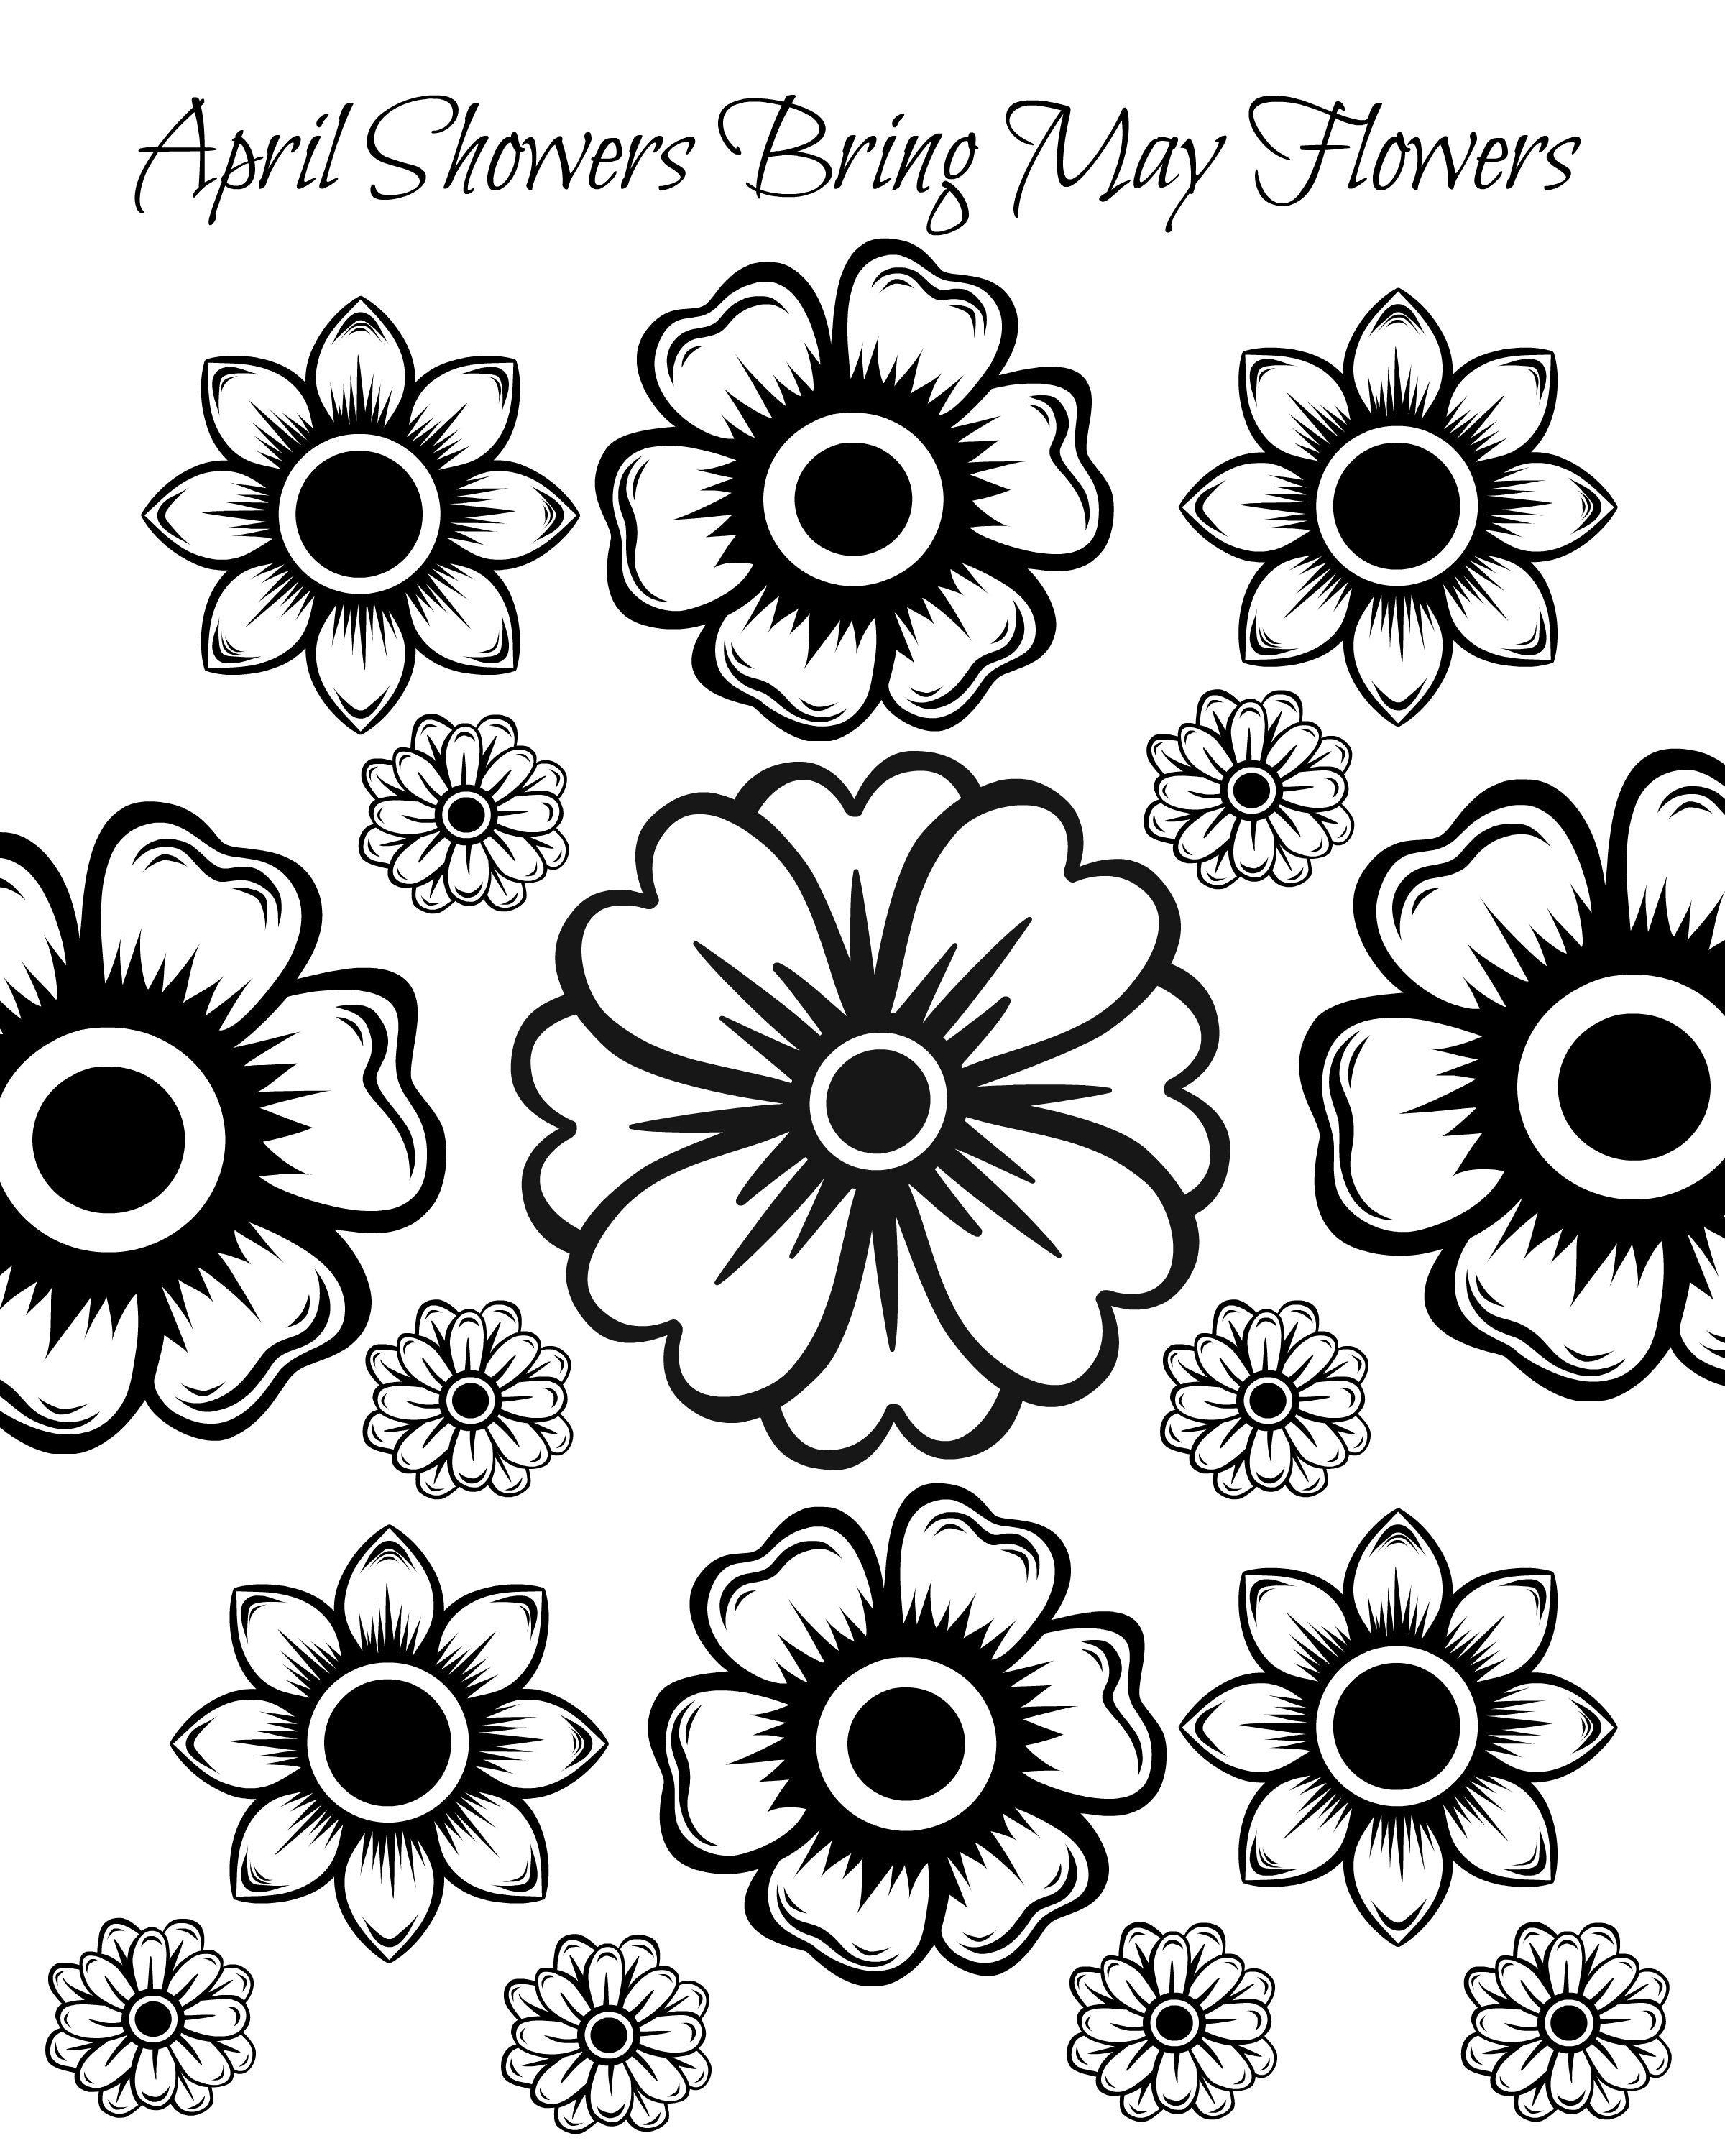 Free Printable May Flowers Adult Coloring Page | Kids - Family - Free Printable Flower Coloring Pages For Adults